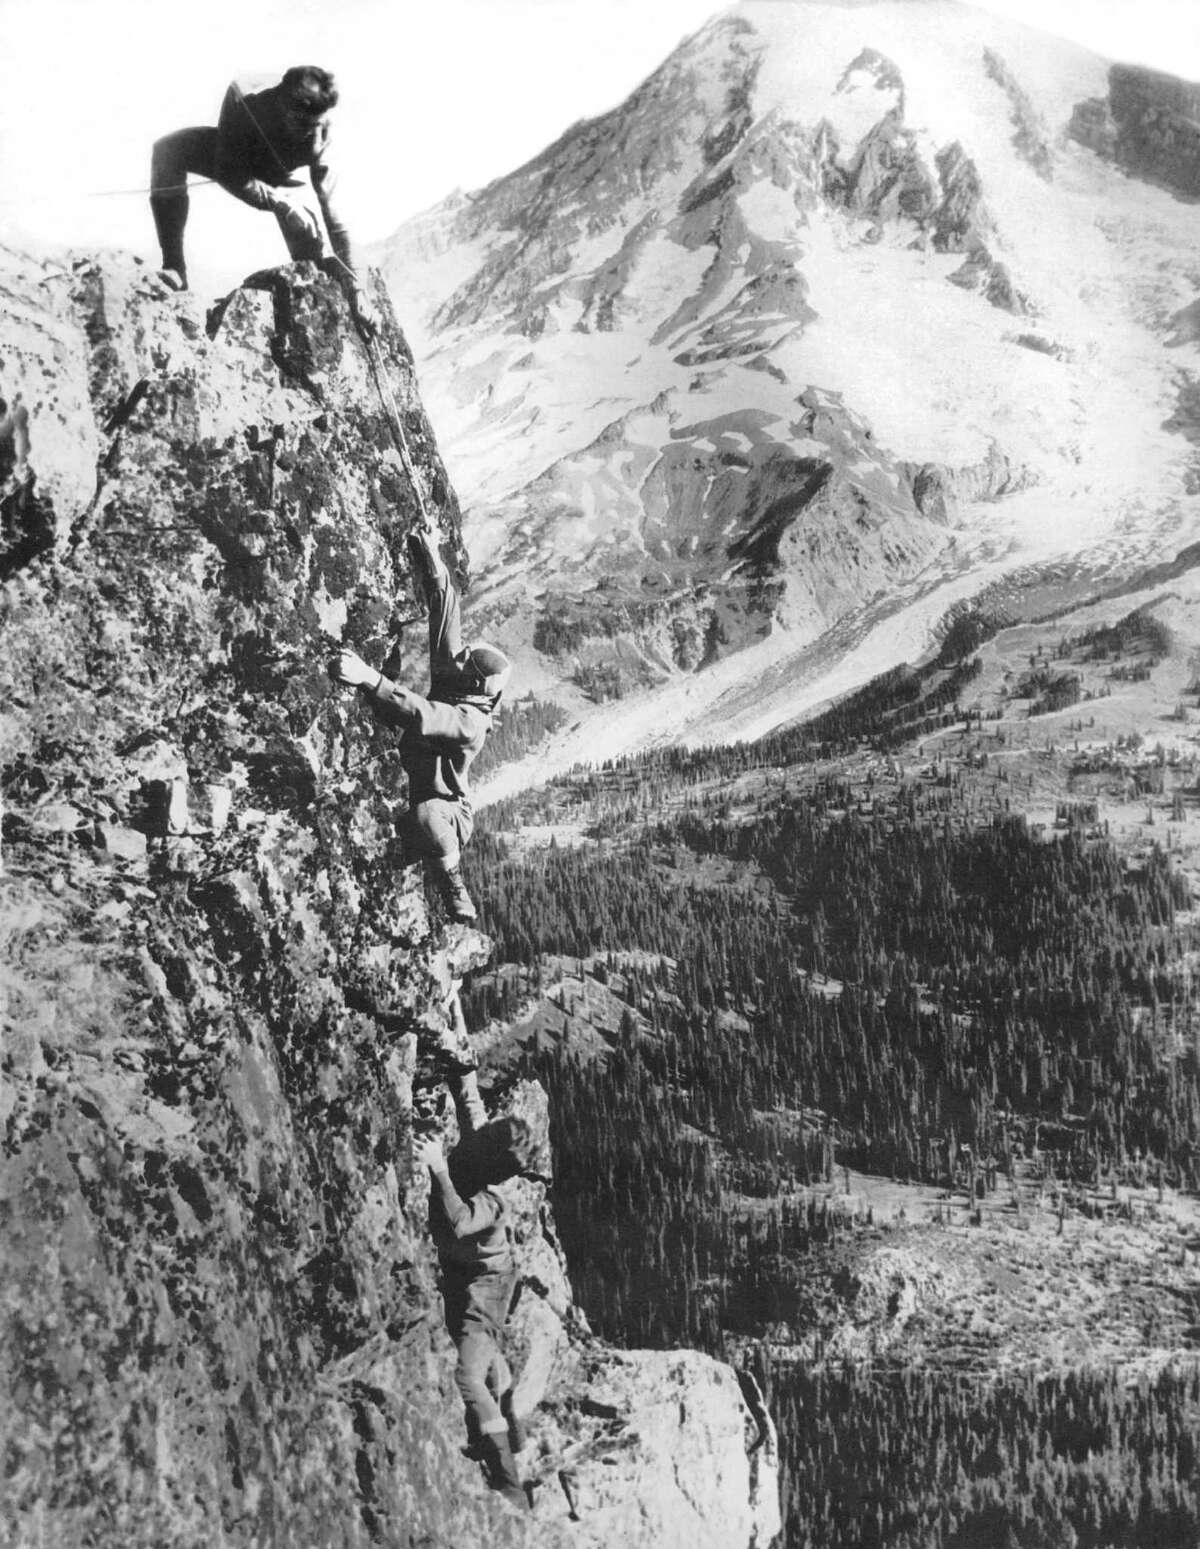 A party of three mountain climbers just as they are about to reach the top of Pinnacle Peak overlooking Paradise Valley, Mount Rainier National Park, Washington, August 15, 1925.